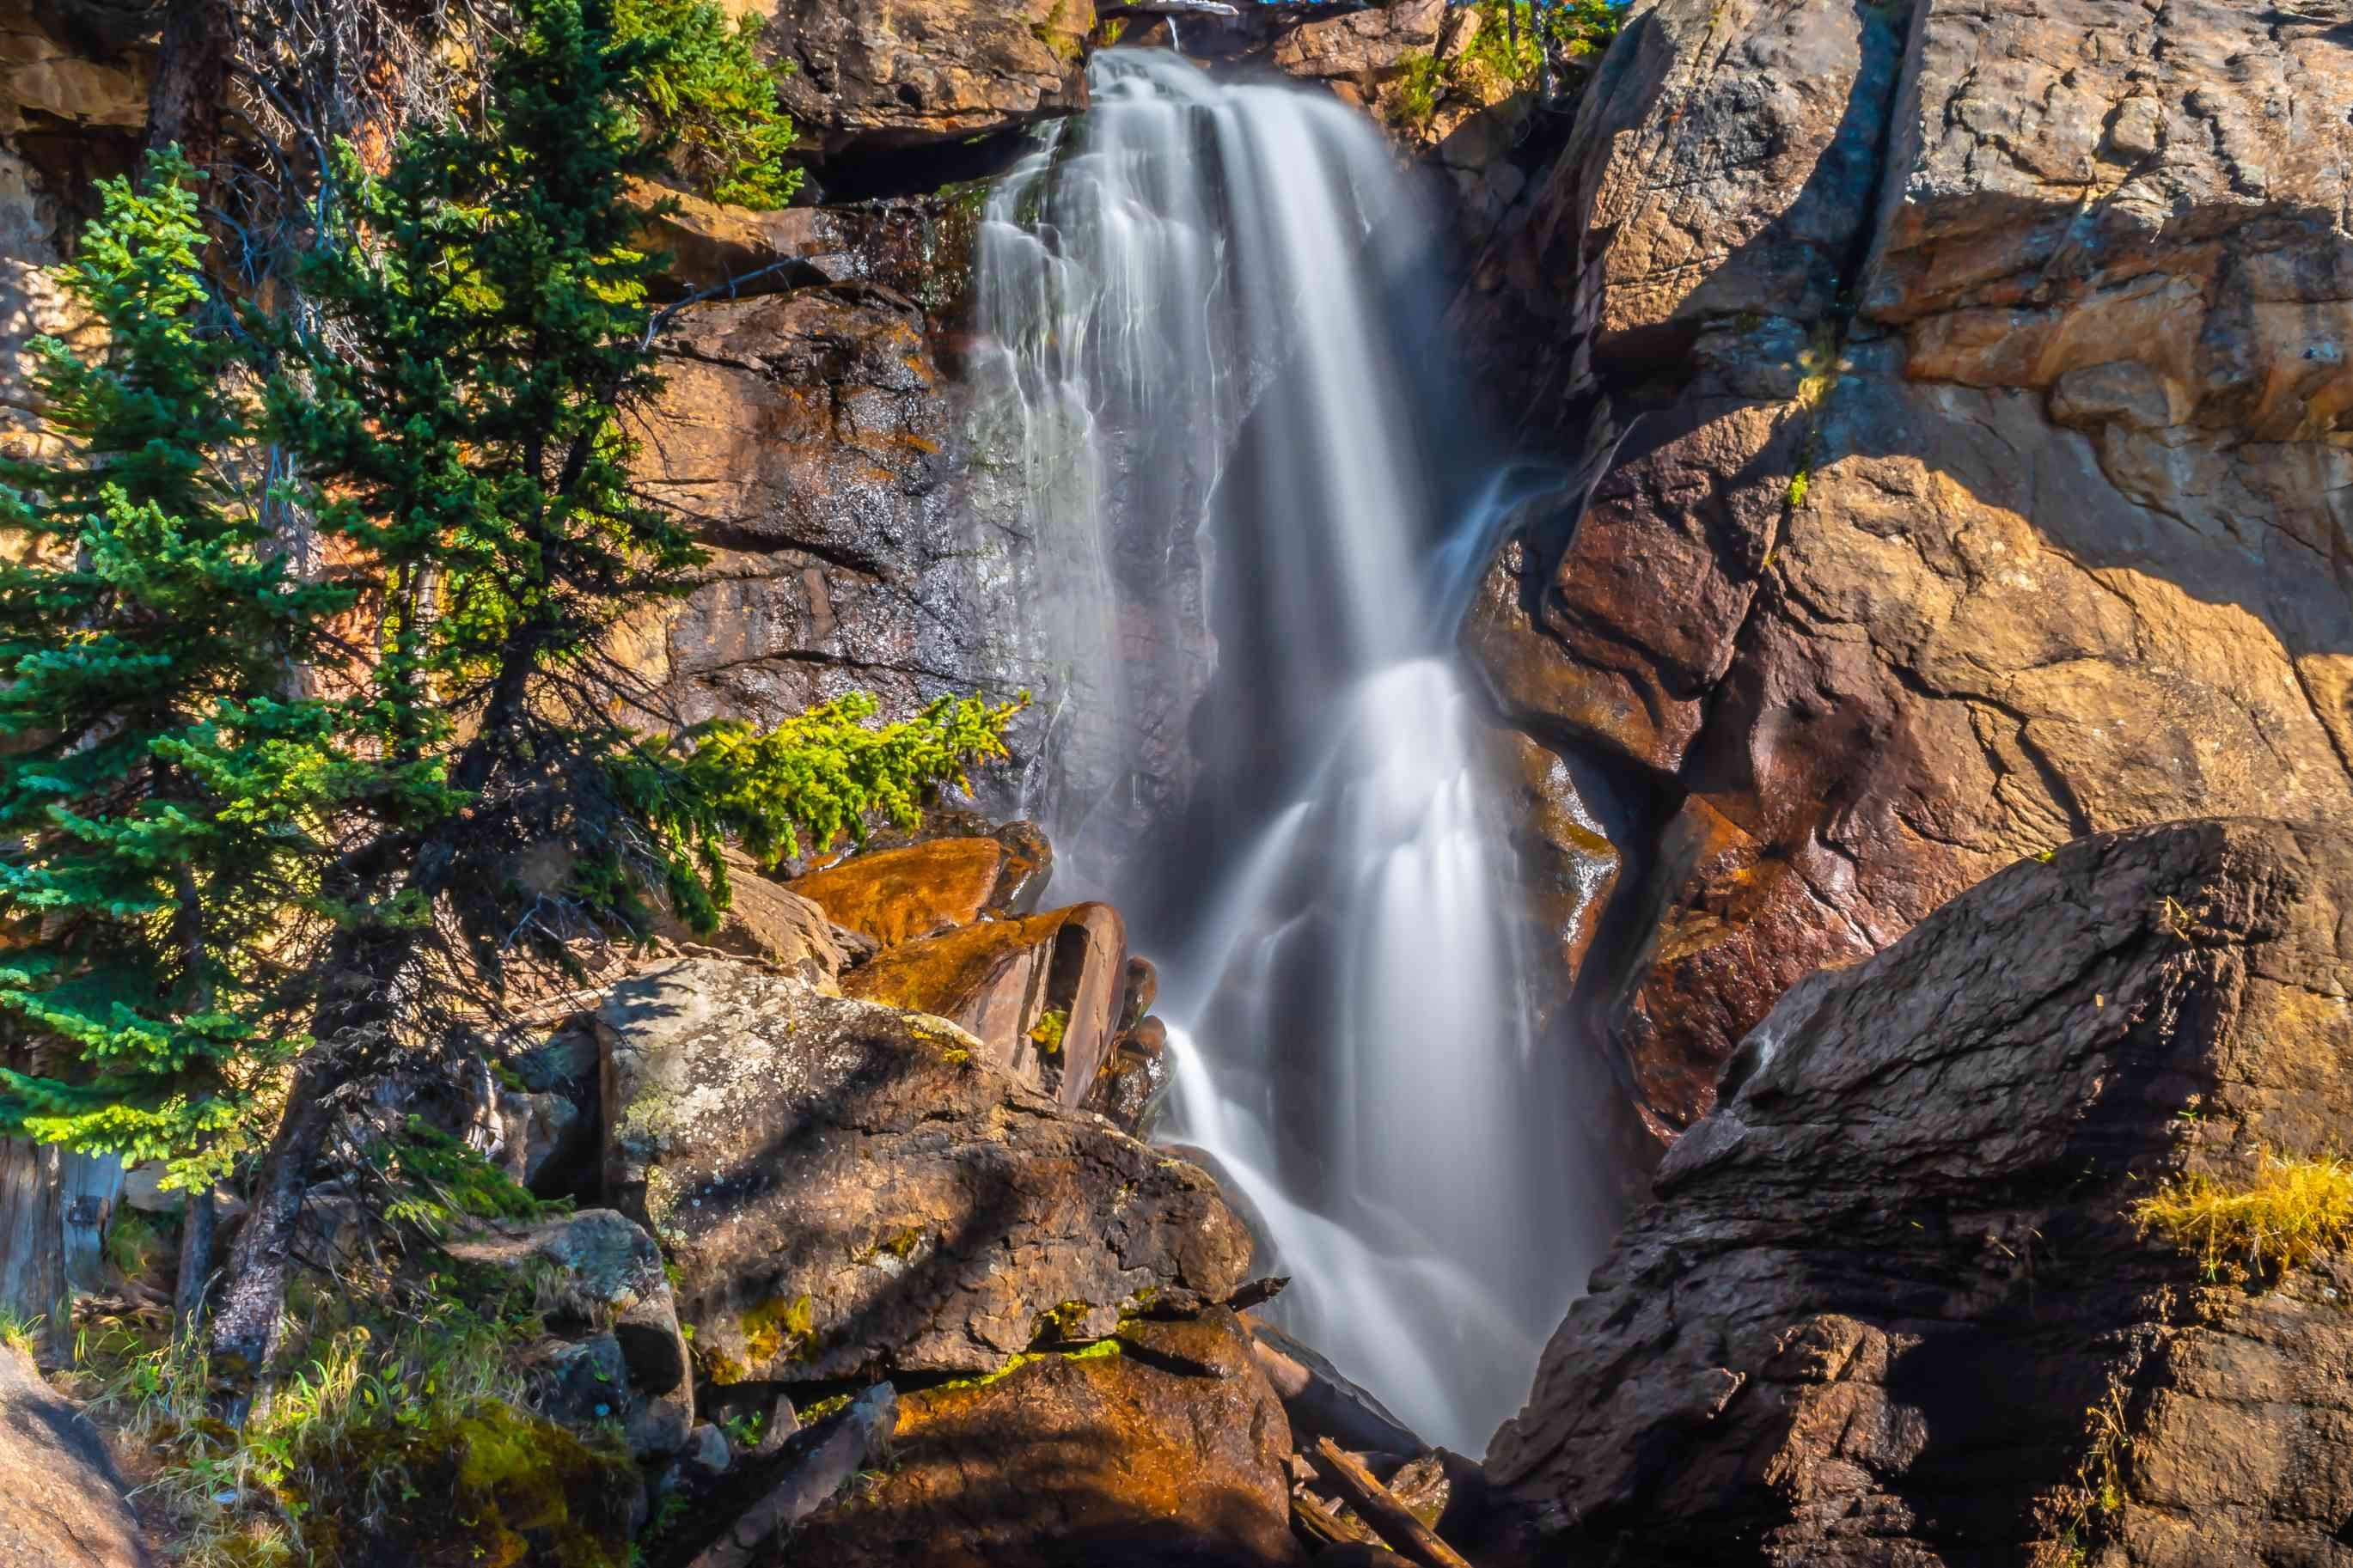 long exposure image of a waterfall going over brown rocks